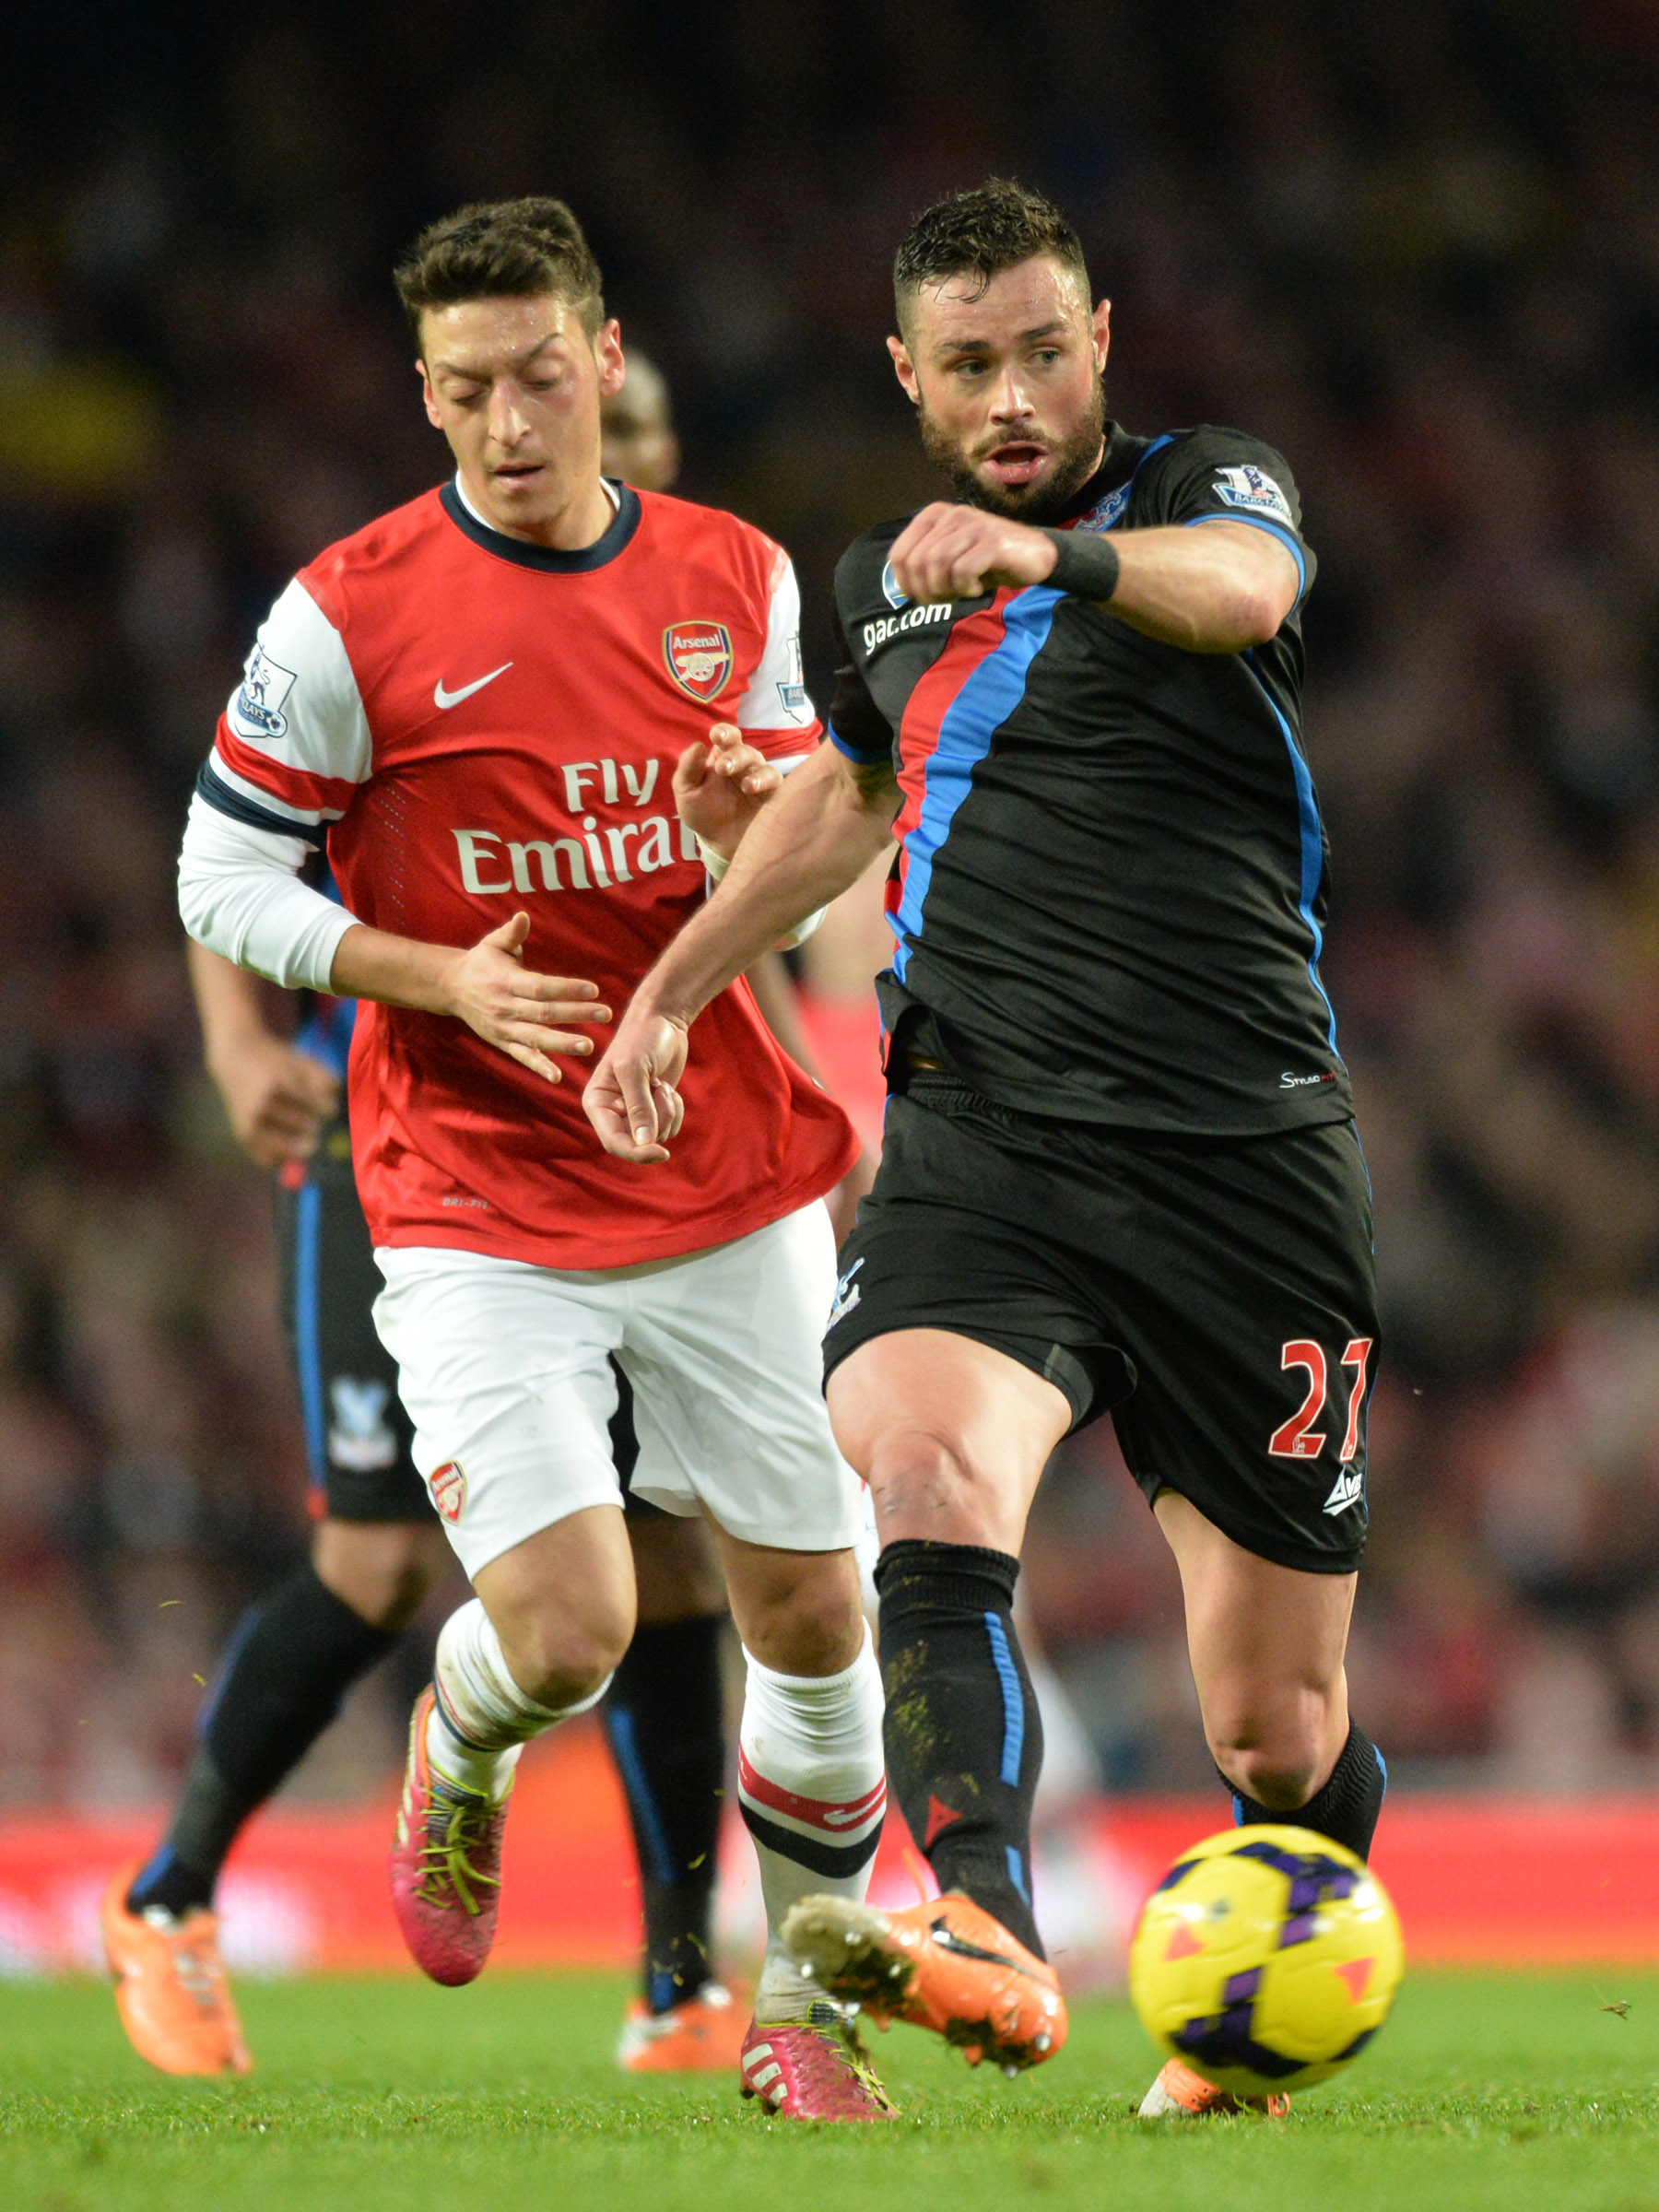 This Is Local London: The Eagles defender gets the better of German star Mesut Ozil at the Emirates. PICTURE BY KEITH GILLARD.